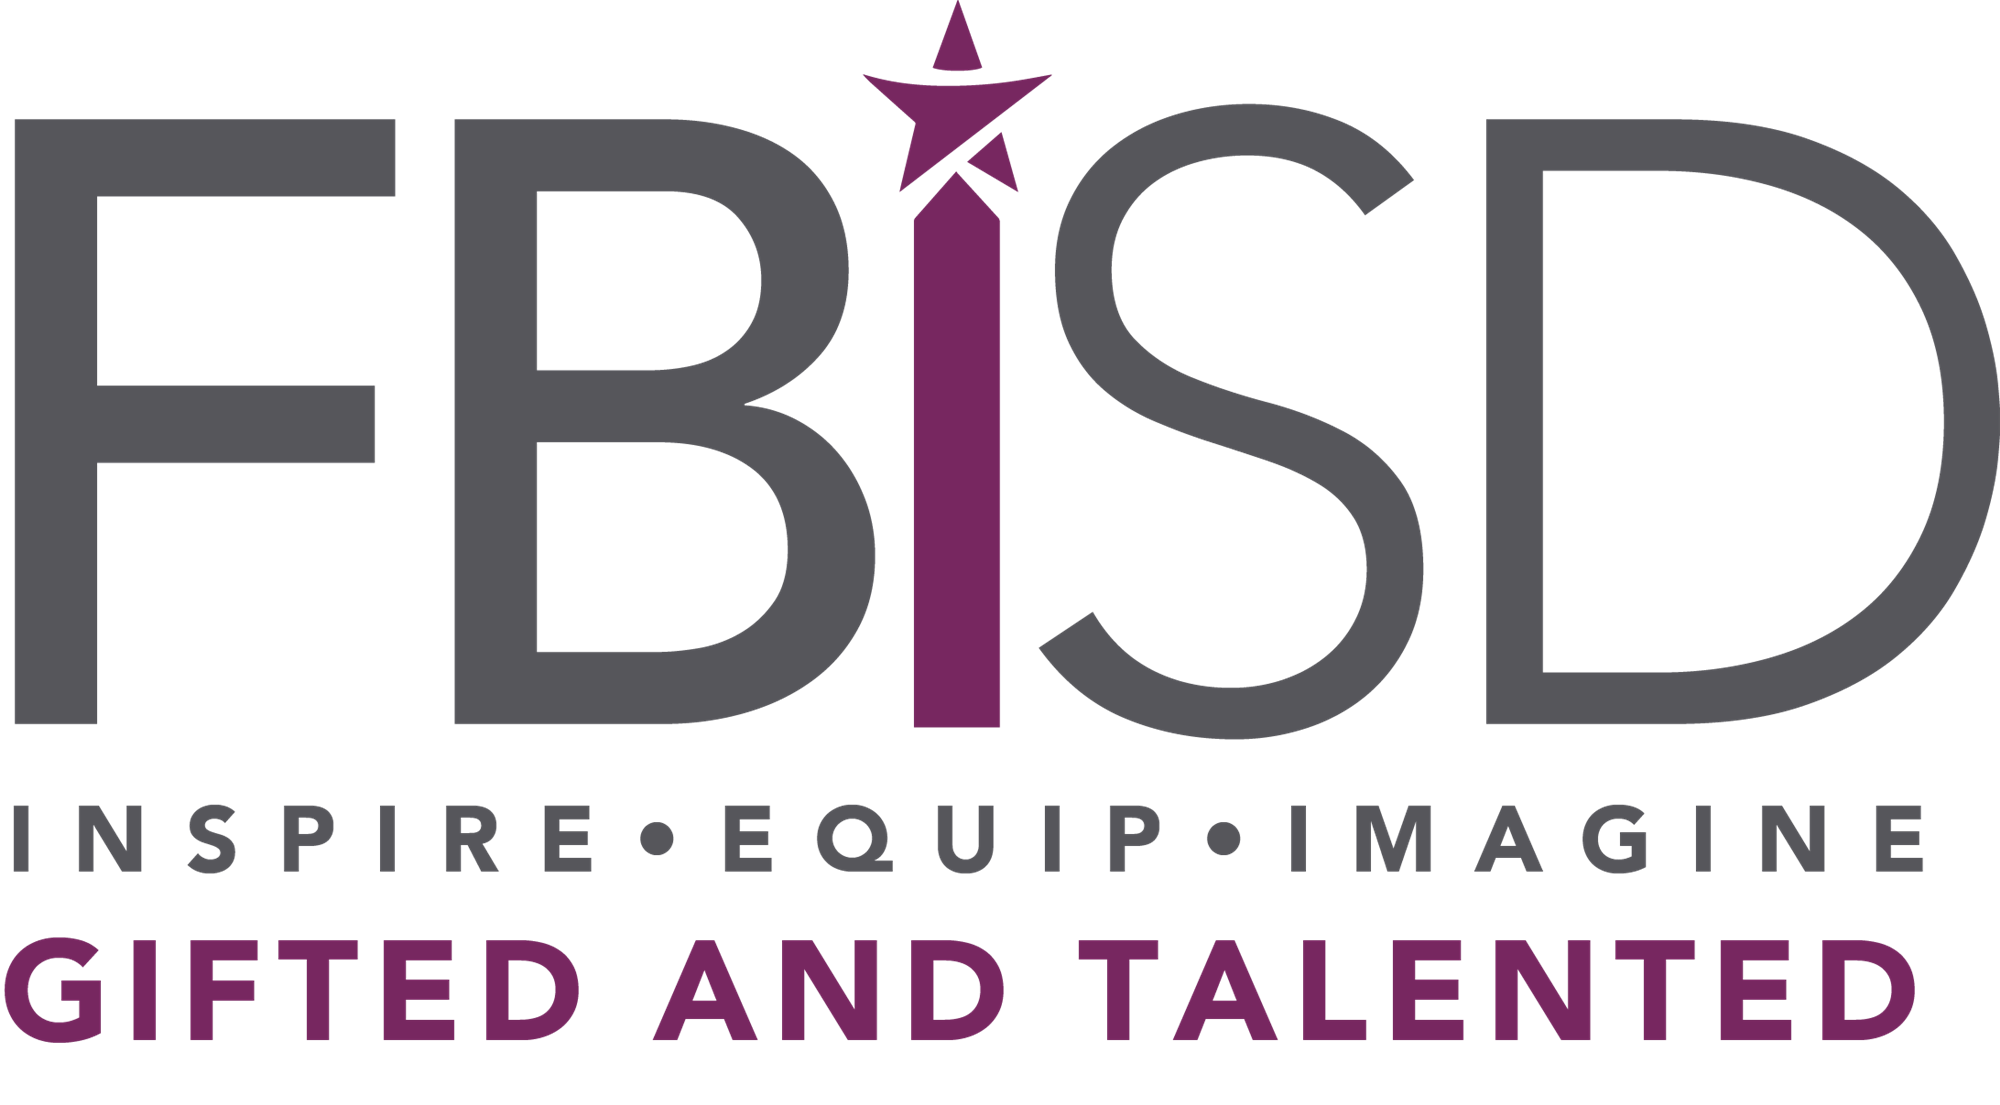 Fort Bend ISD Gifted and Talented Services Logo